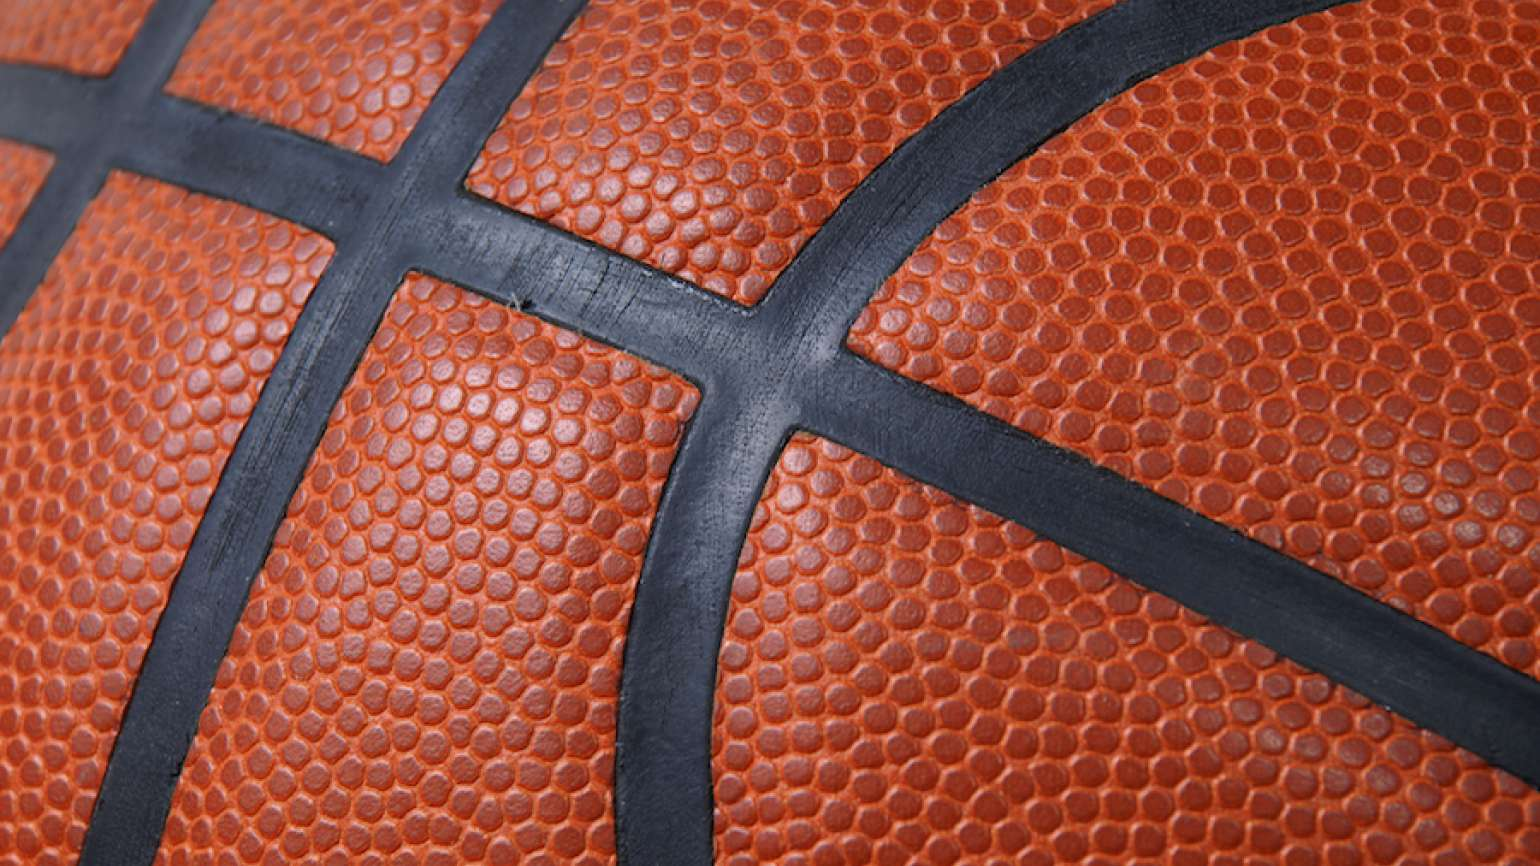 Basketball. Thinkstock.